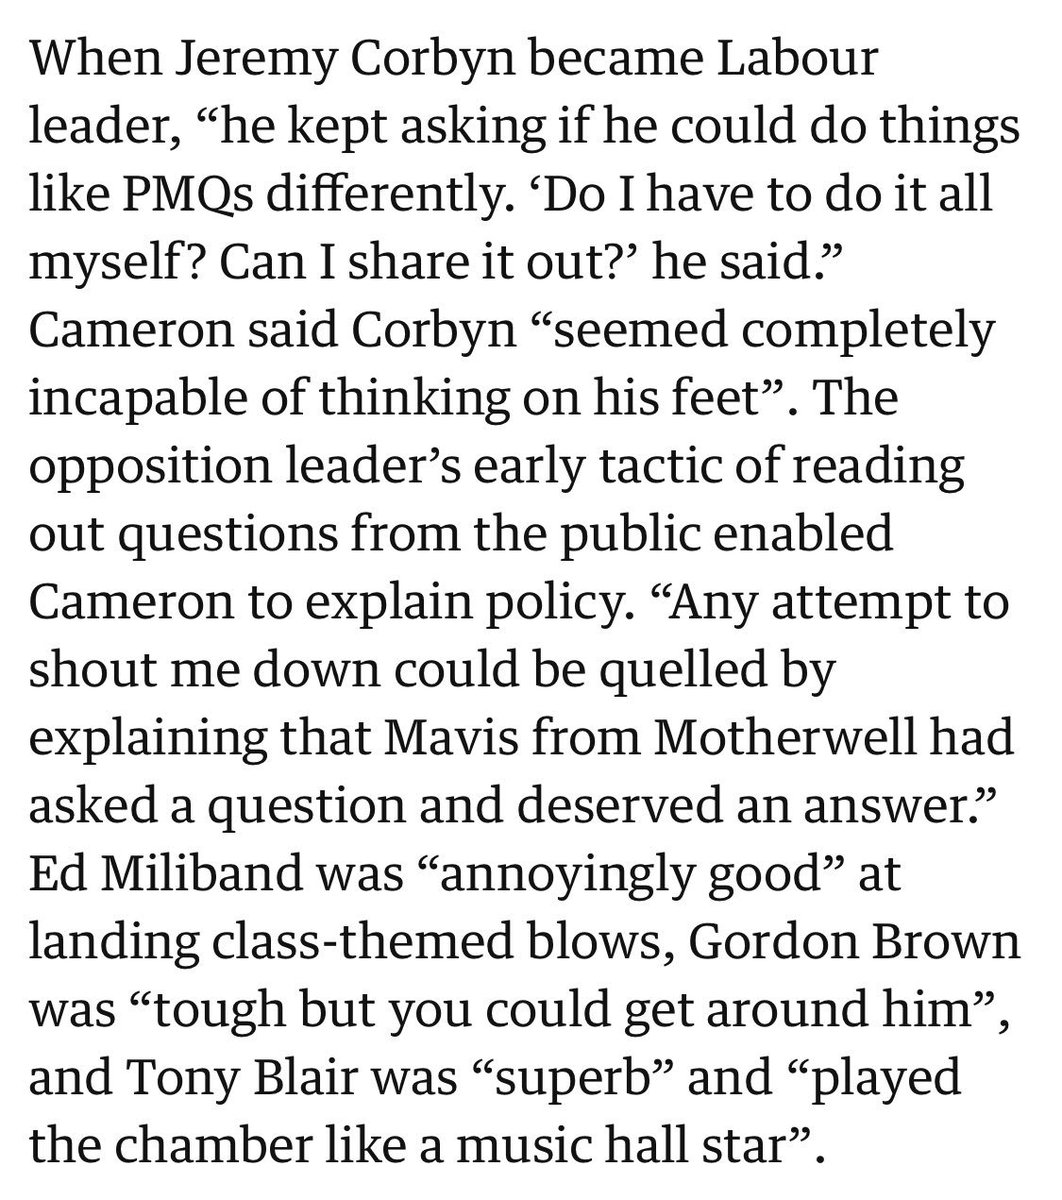 NEW: Jeremy Corbyn asked if he could 'share out' responsibility for #PMQs when he first became Labour leader.  (According to @David_Cameron's new book).   https://www. theguardian.com/politics/2019/ sep/18/david-cameron-book-more-relevations-from-downing-street-years   … <br>http://pic.twitter.com/jhwJr0X6Zq